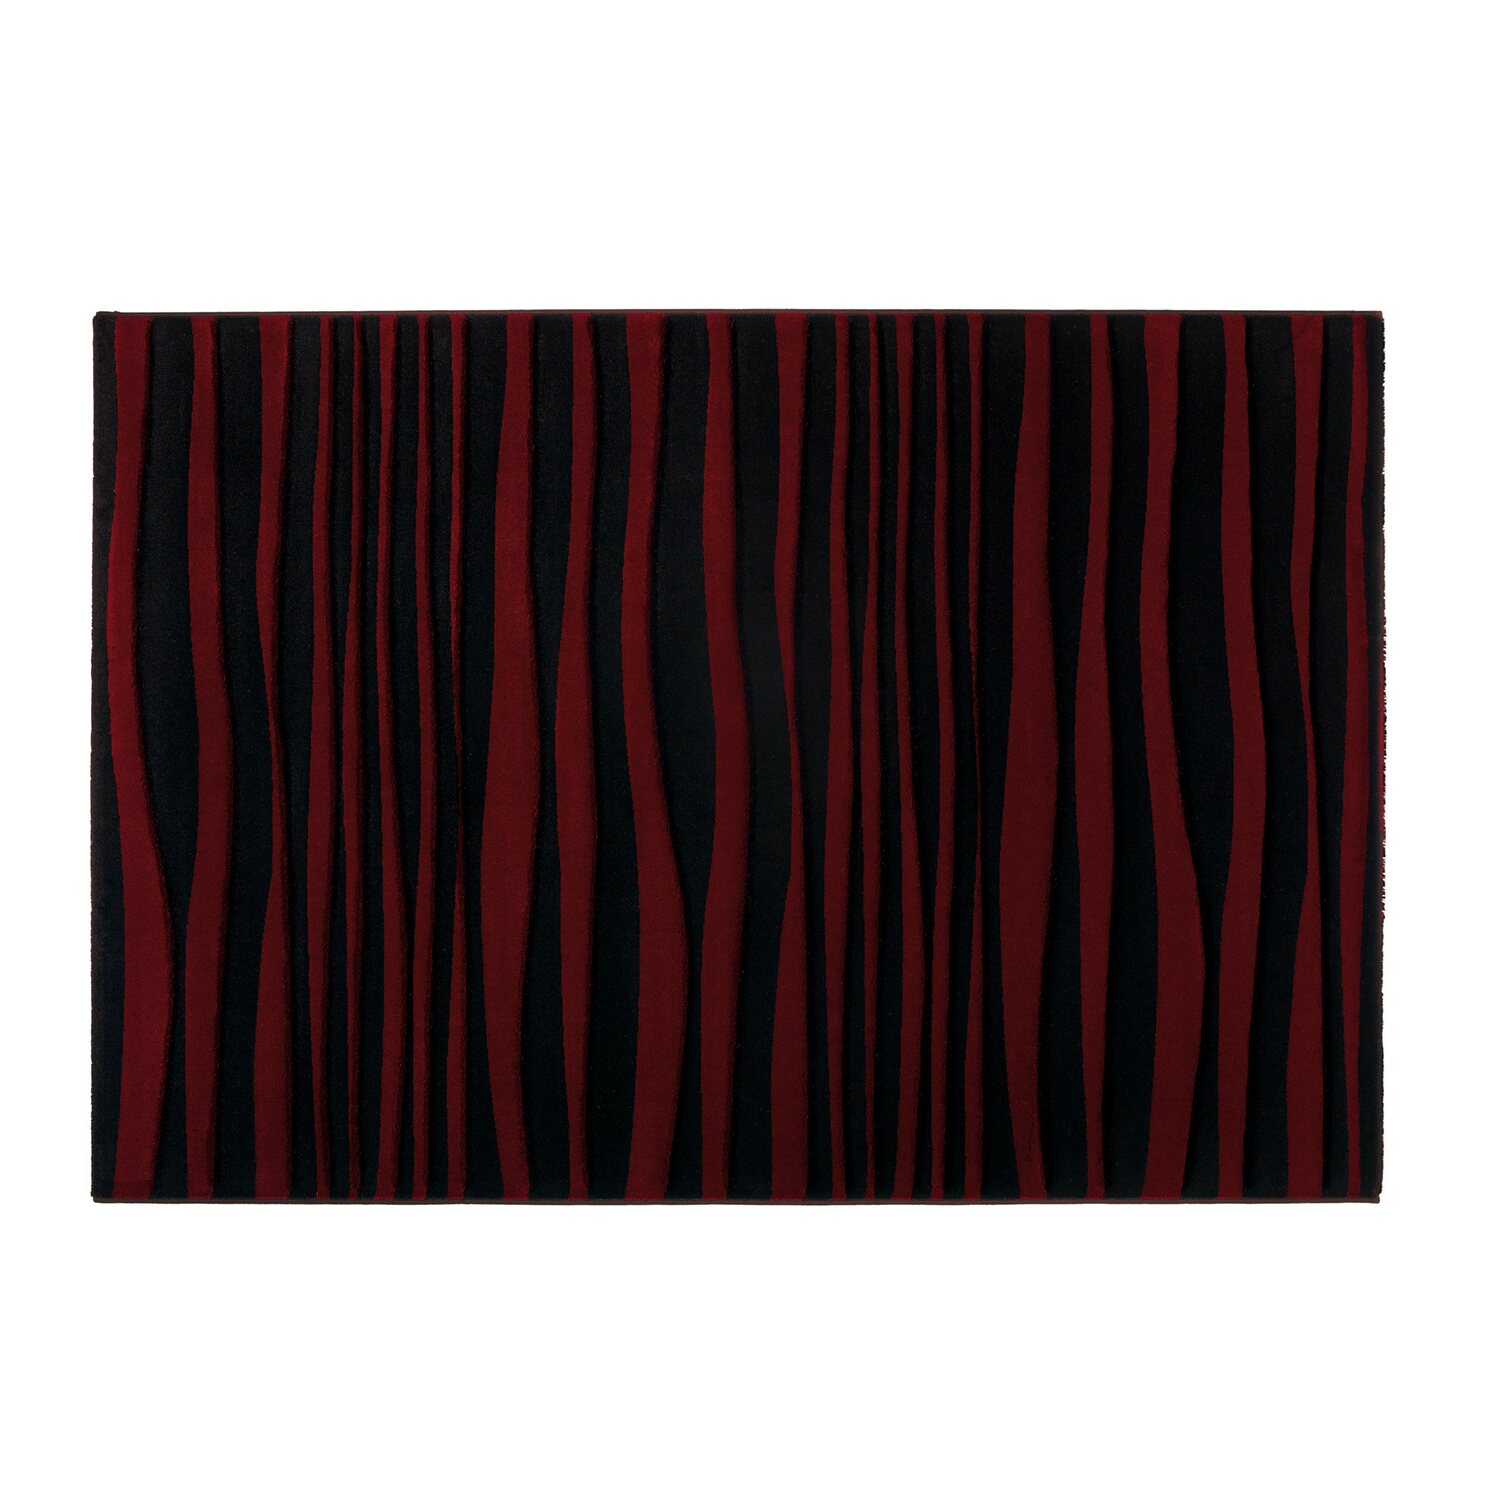 contzen teppich zebra schwarz rot 120 x 180 cm kaufen bei obi. Black Bedroom Furniture Sets. Home Design Ideas